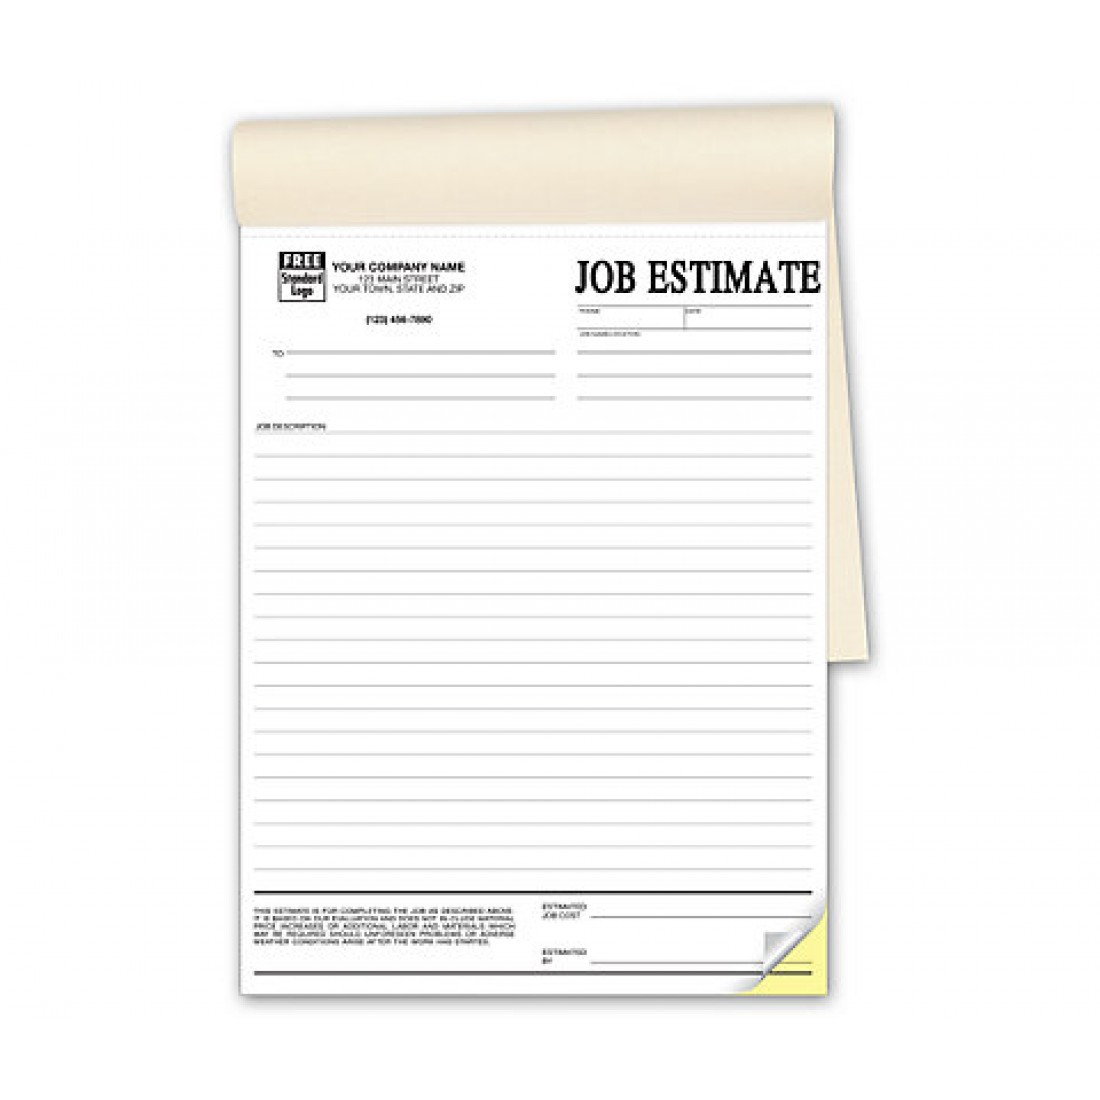 Estimate Forms Customized Estimate Forms General Standard – Job Estimate Sheet